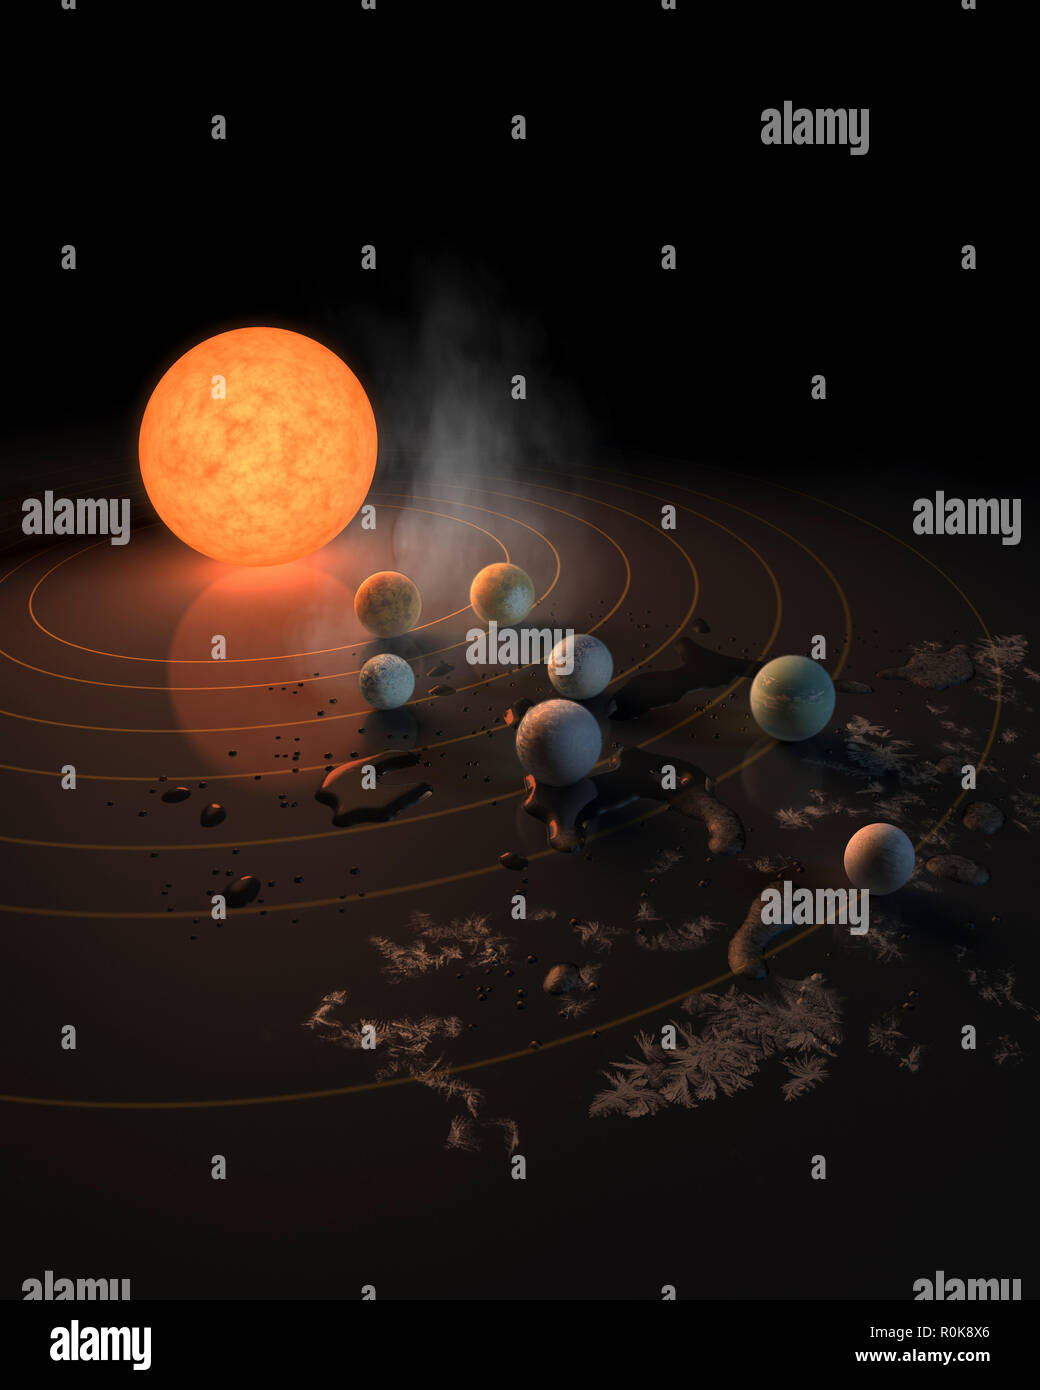 Artist concept of what TRAPPIST-1's seven planets might look like in orbit around their star. - Stock Image